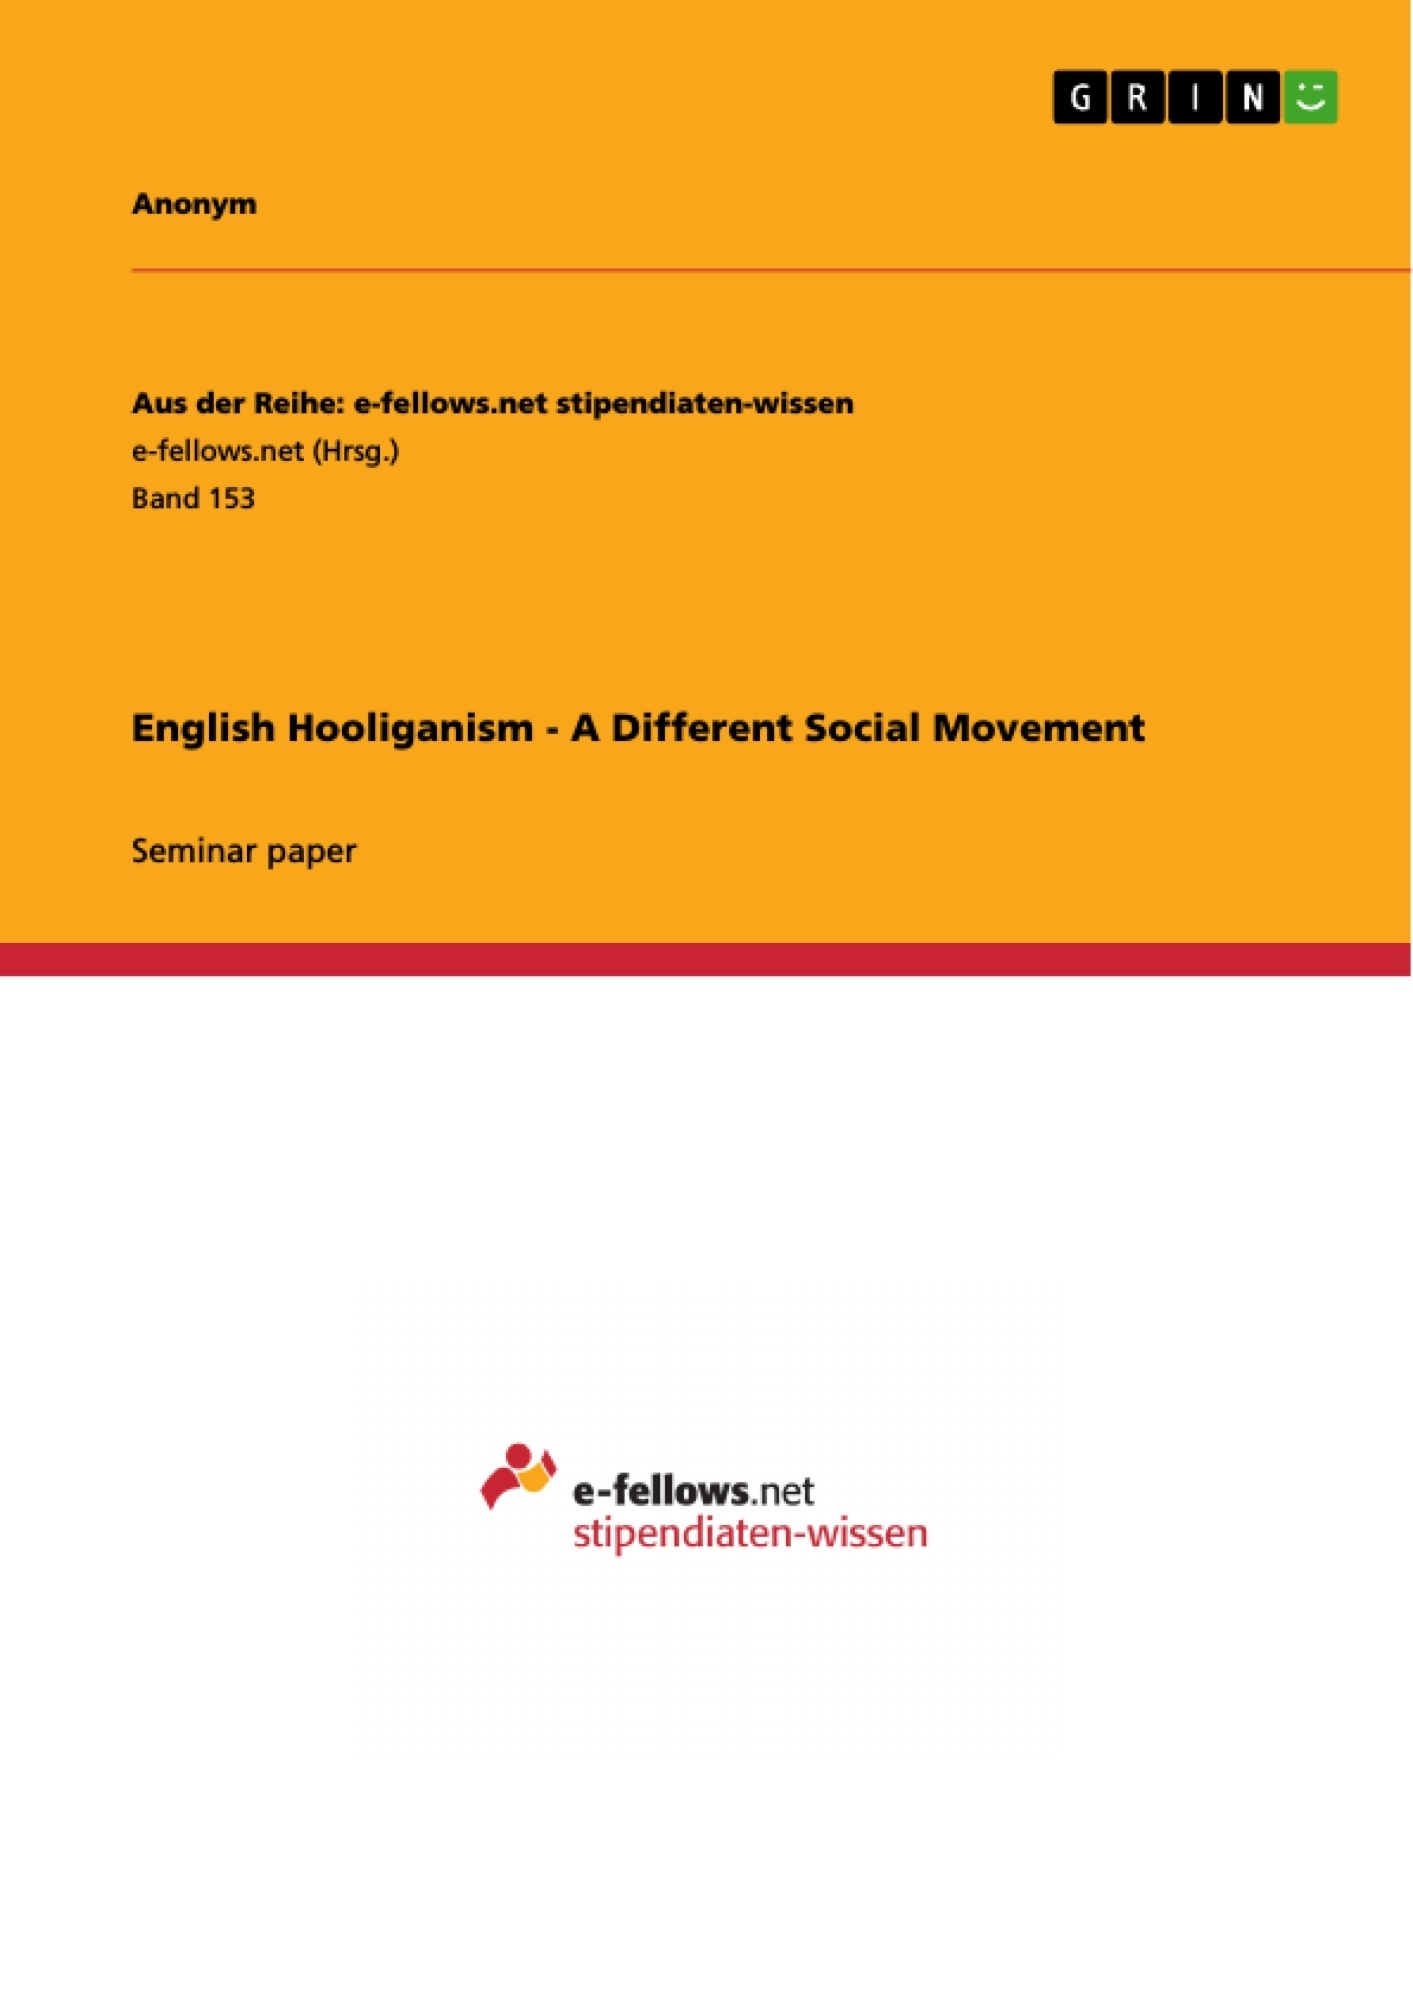 Title: English Hooliganism - A Different Social Movement